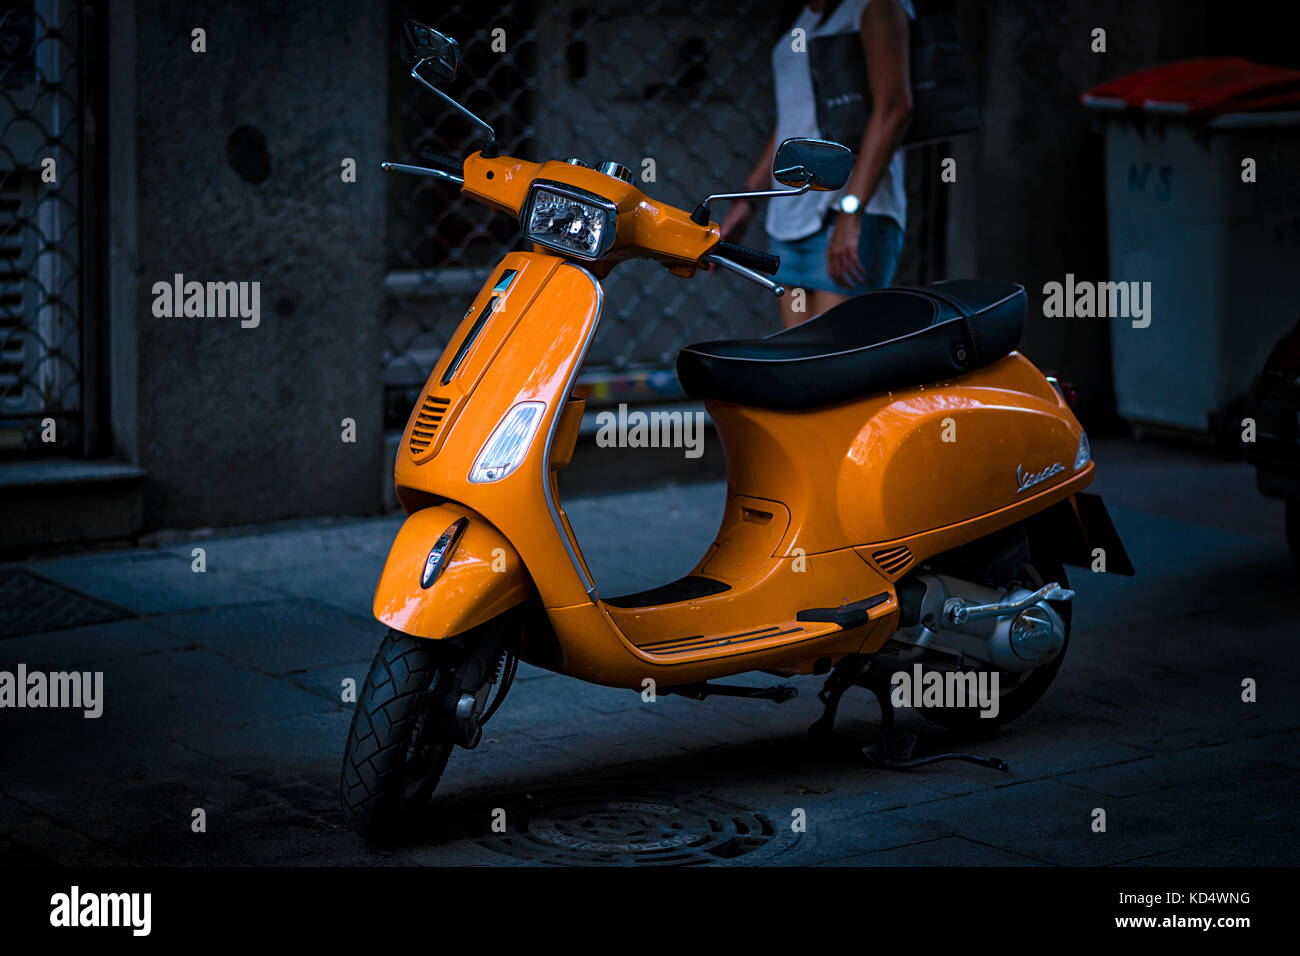 Ornage scooter on the pavement in Madrid, Spain - Stock Image